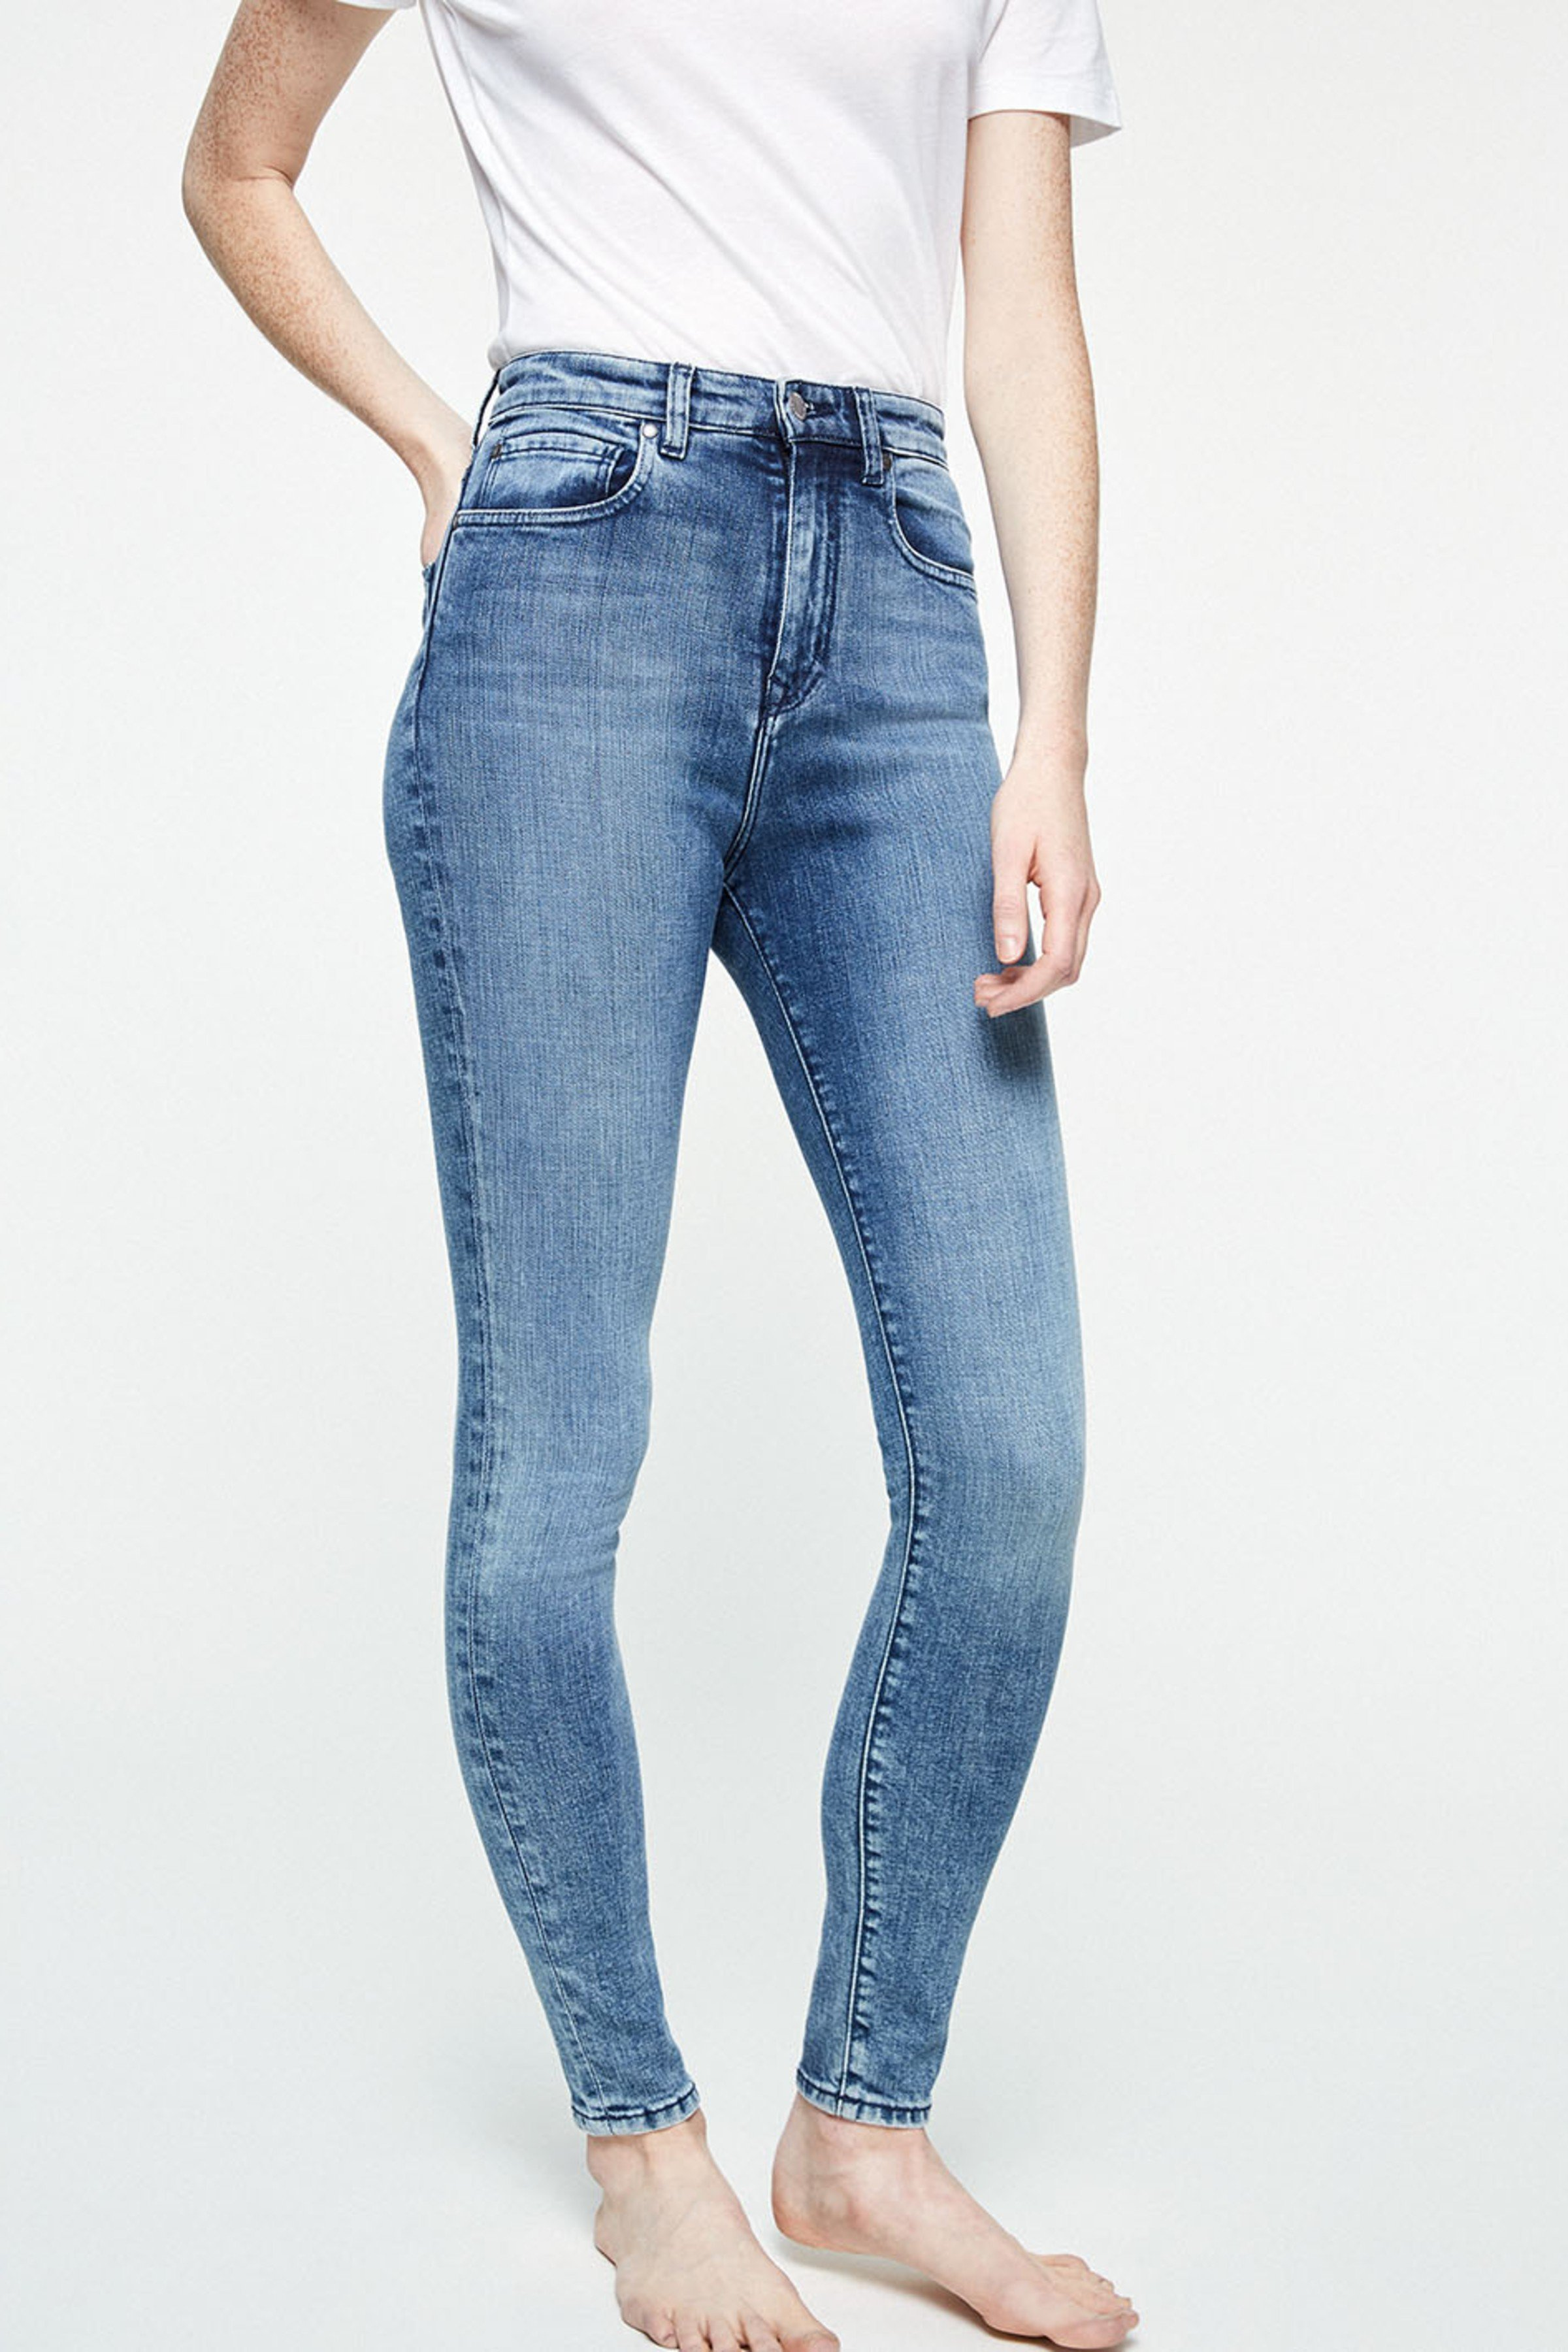 Jeans Ingaa Stone Wash Blau from LOVECO